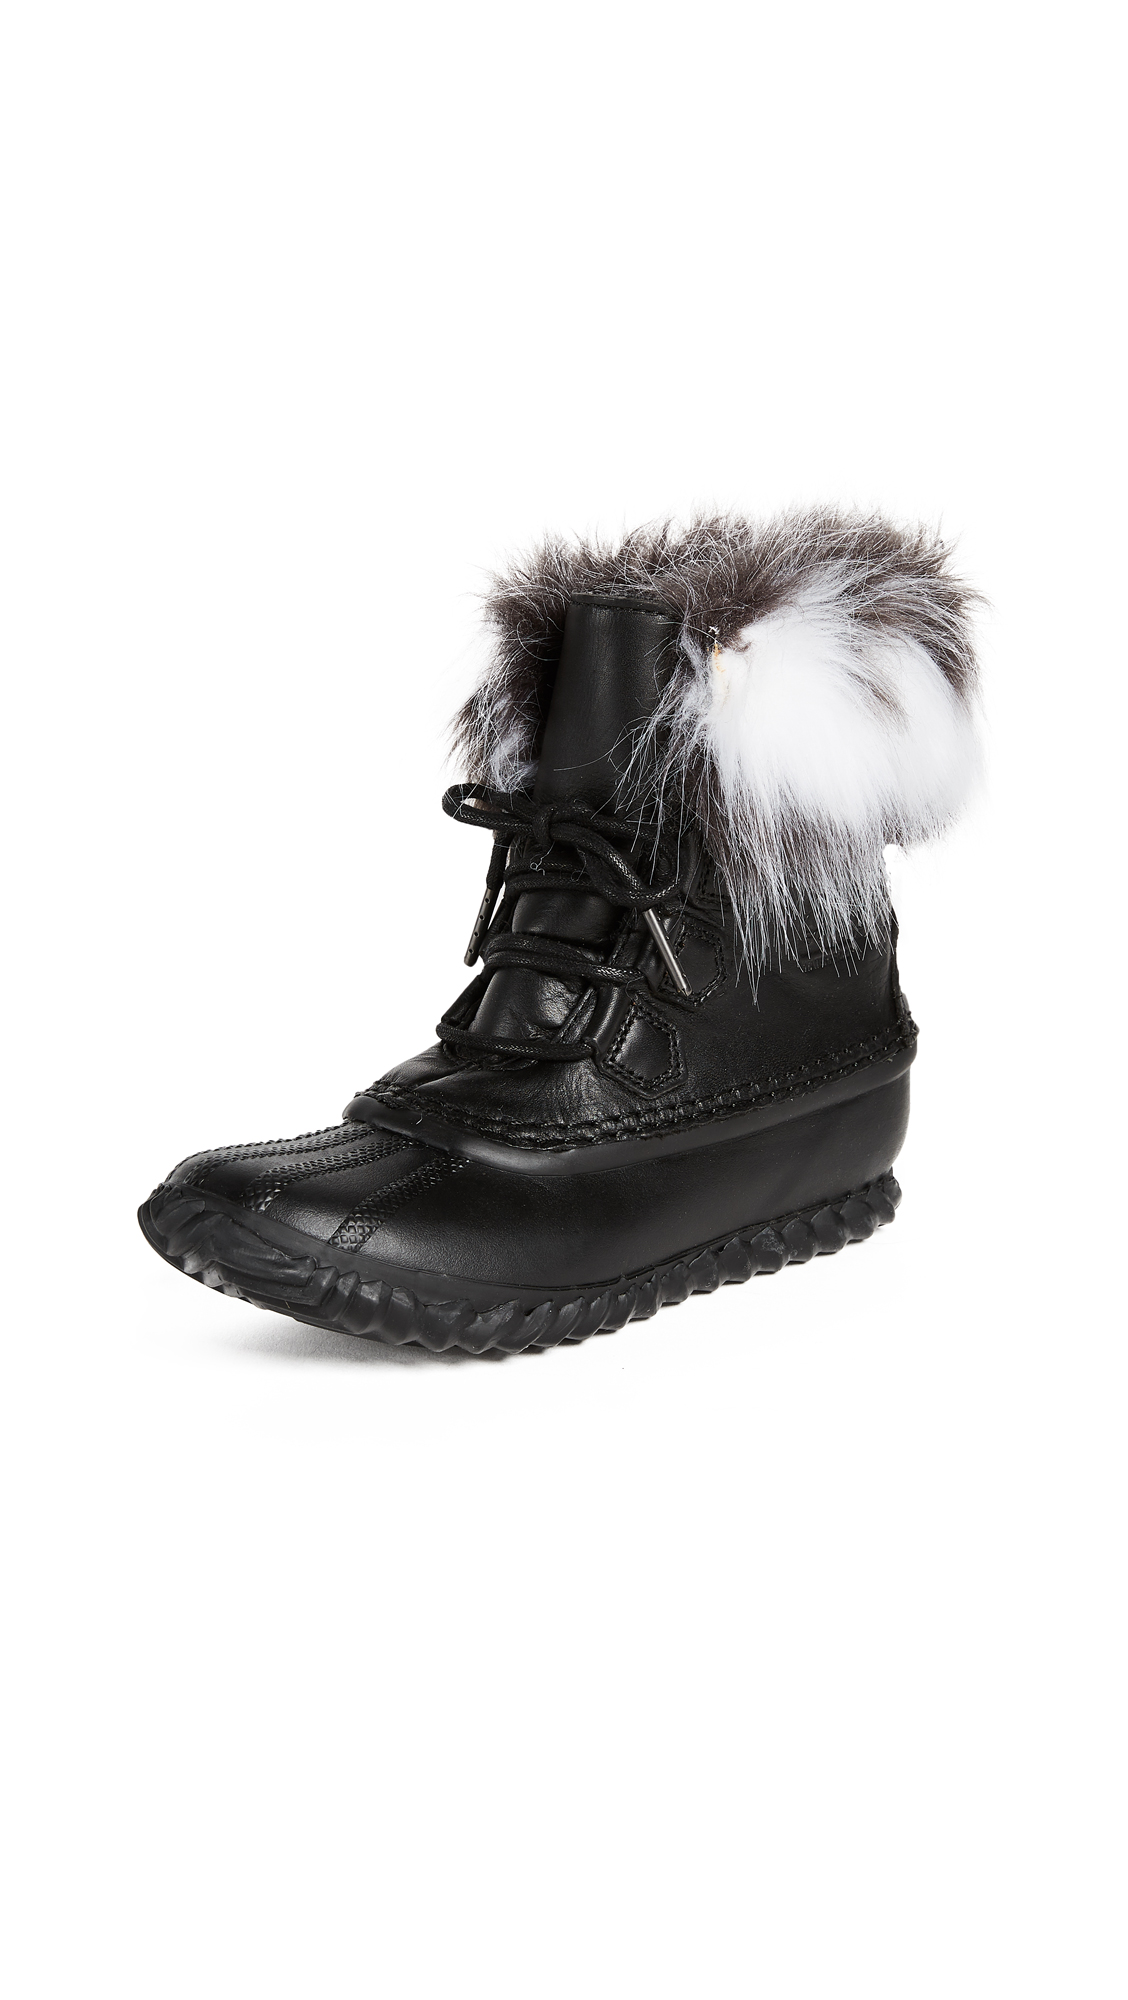 Sorel Out N About Luxe Boots - Black